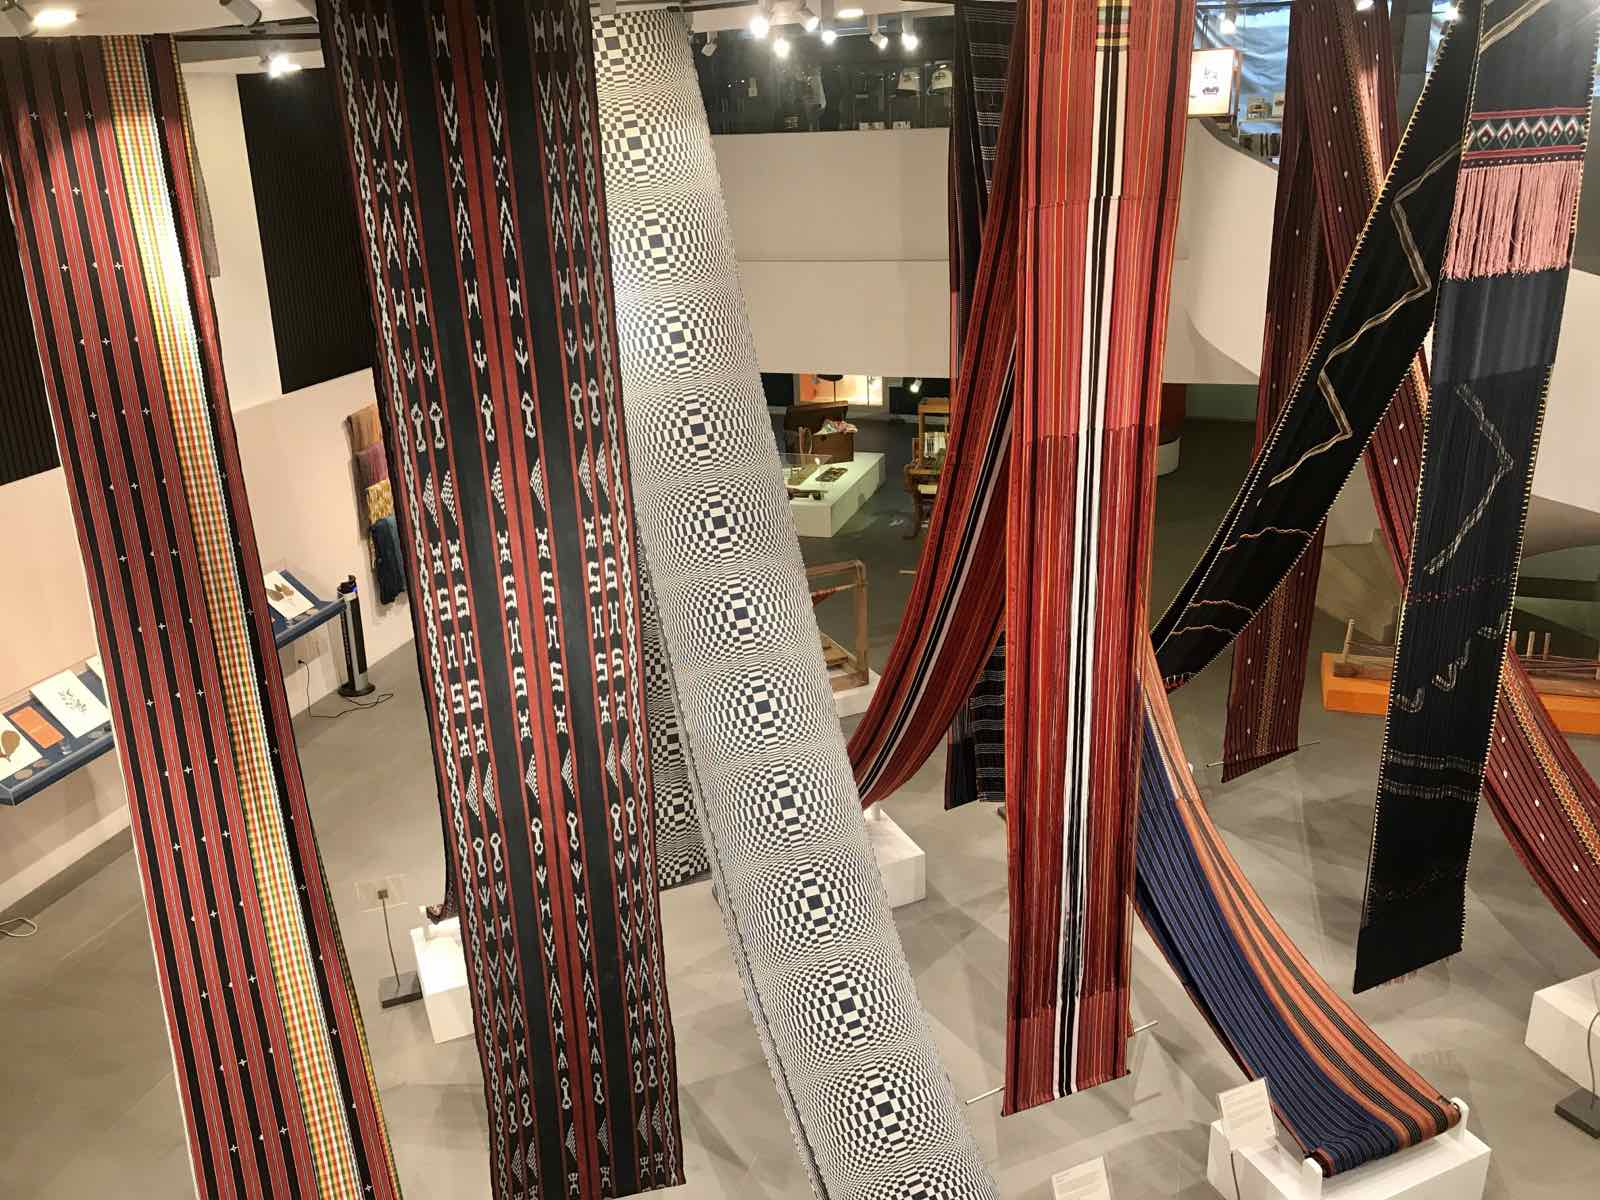 A display of fine weaving at Museo Cordillera